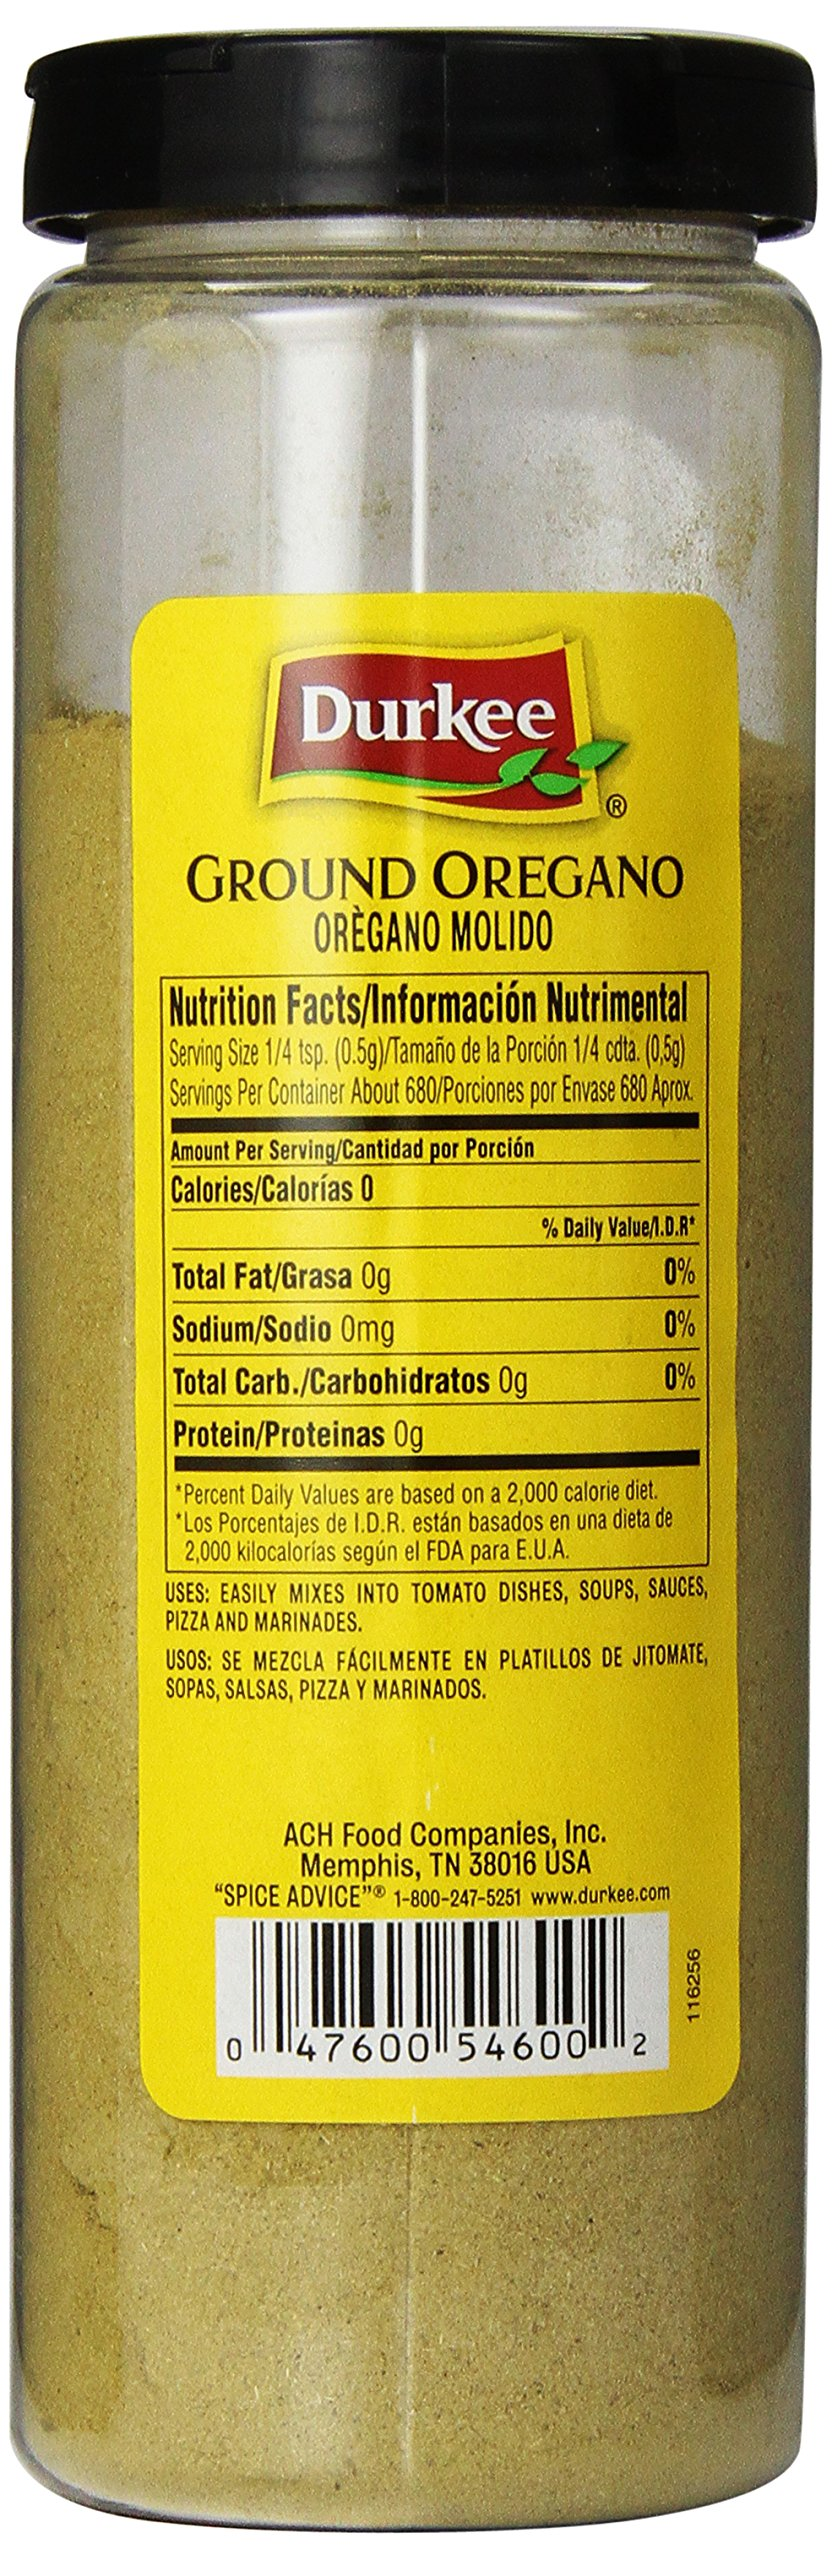 Durkee Ground Oregano, Ground, 12-Ounce by Durkee (Image #3)